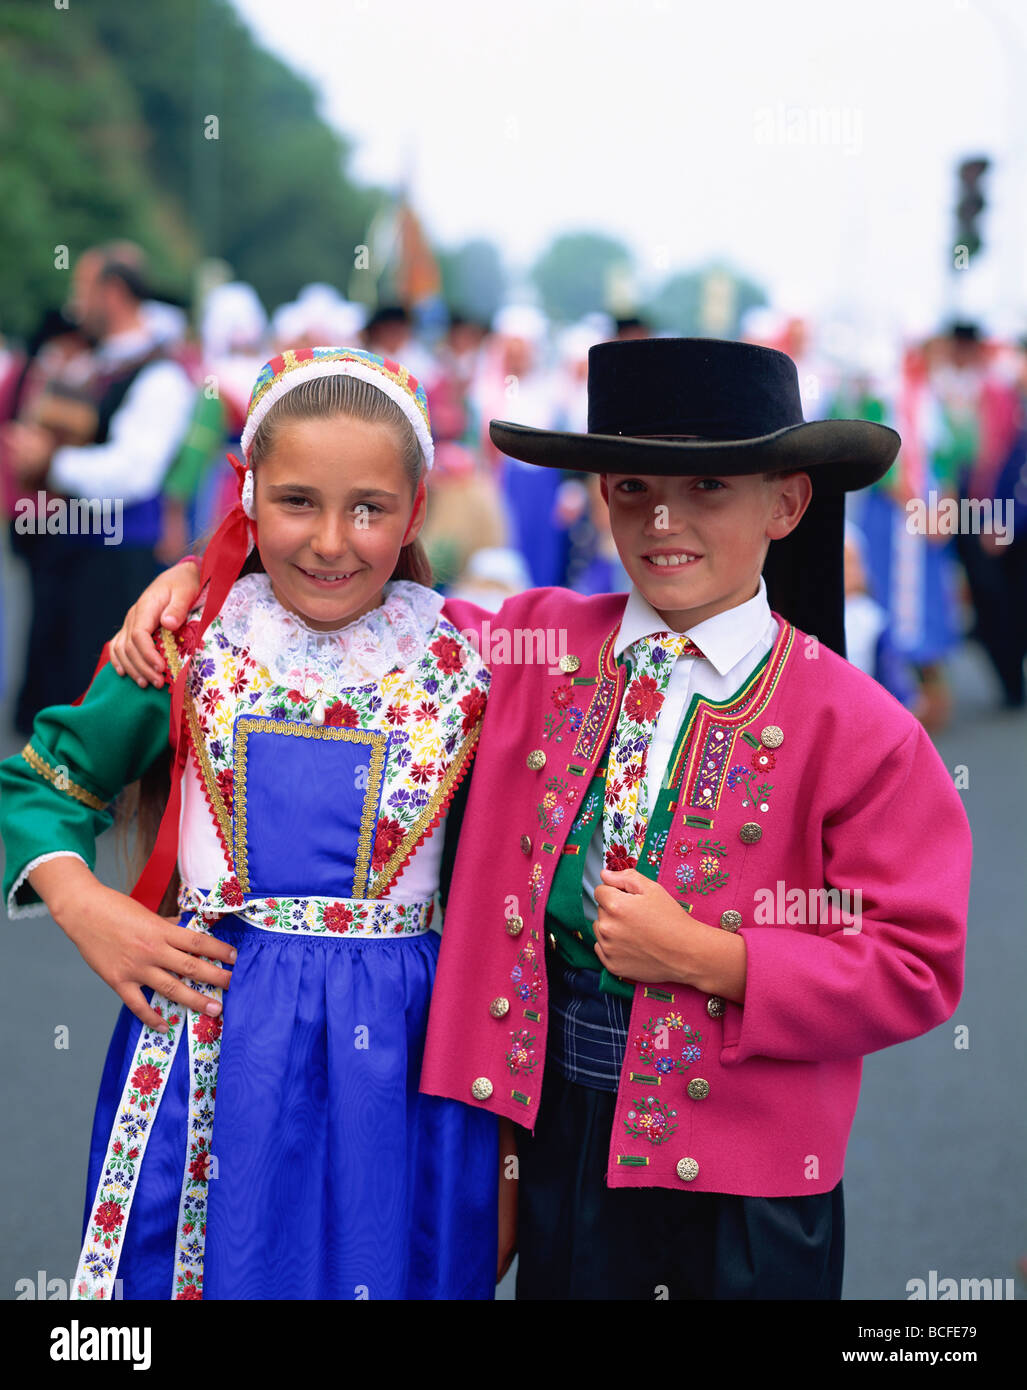 France Brittany Children In Traditional Costume Stock